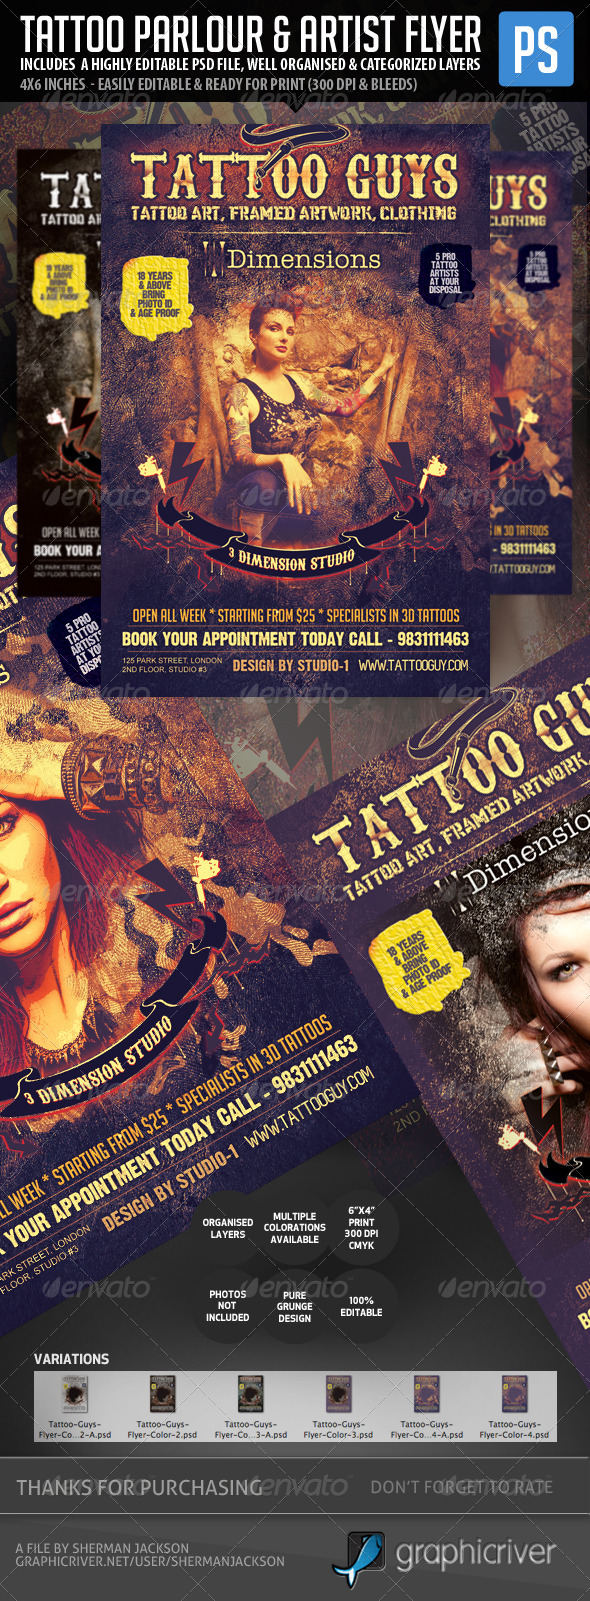 GraphicRiver Tattoo Artist & Tattoo Parlour Flyer 5328352